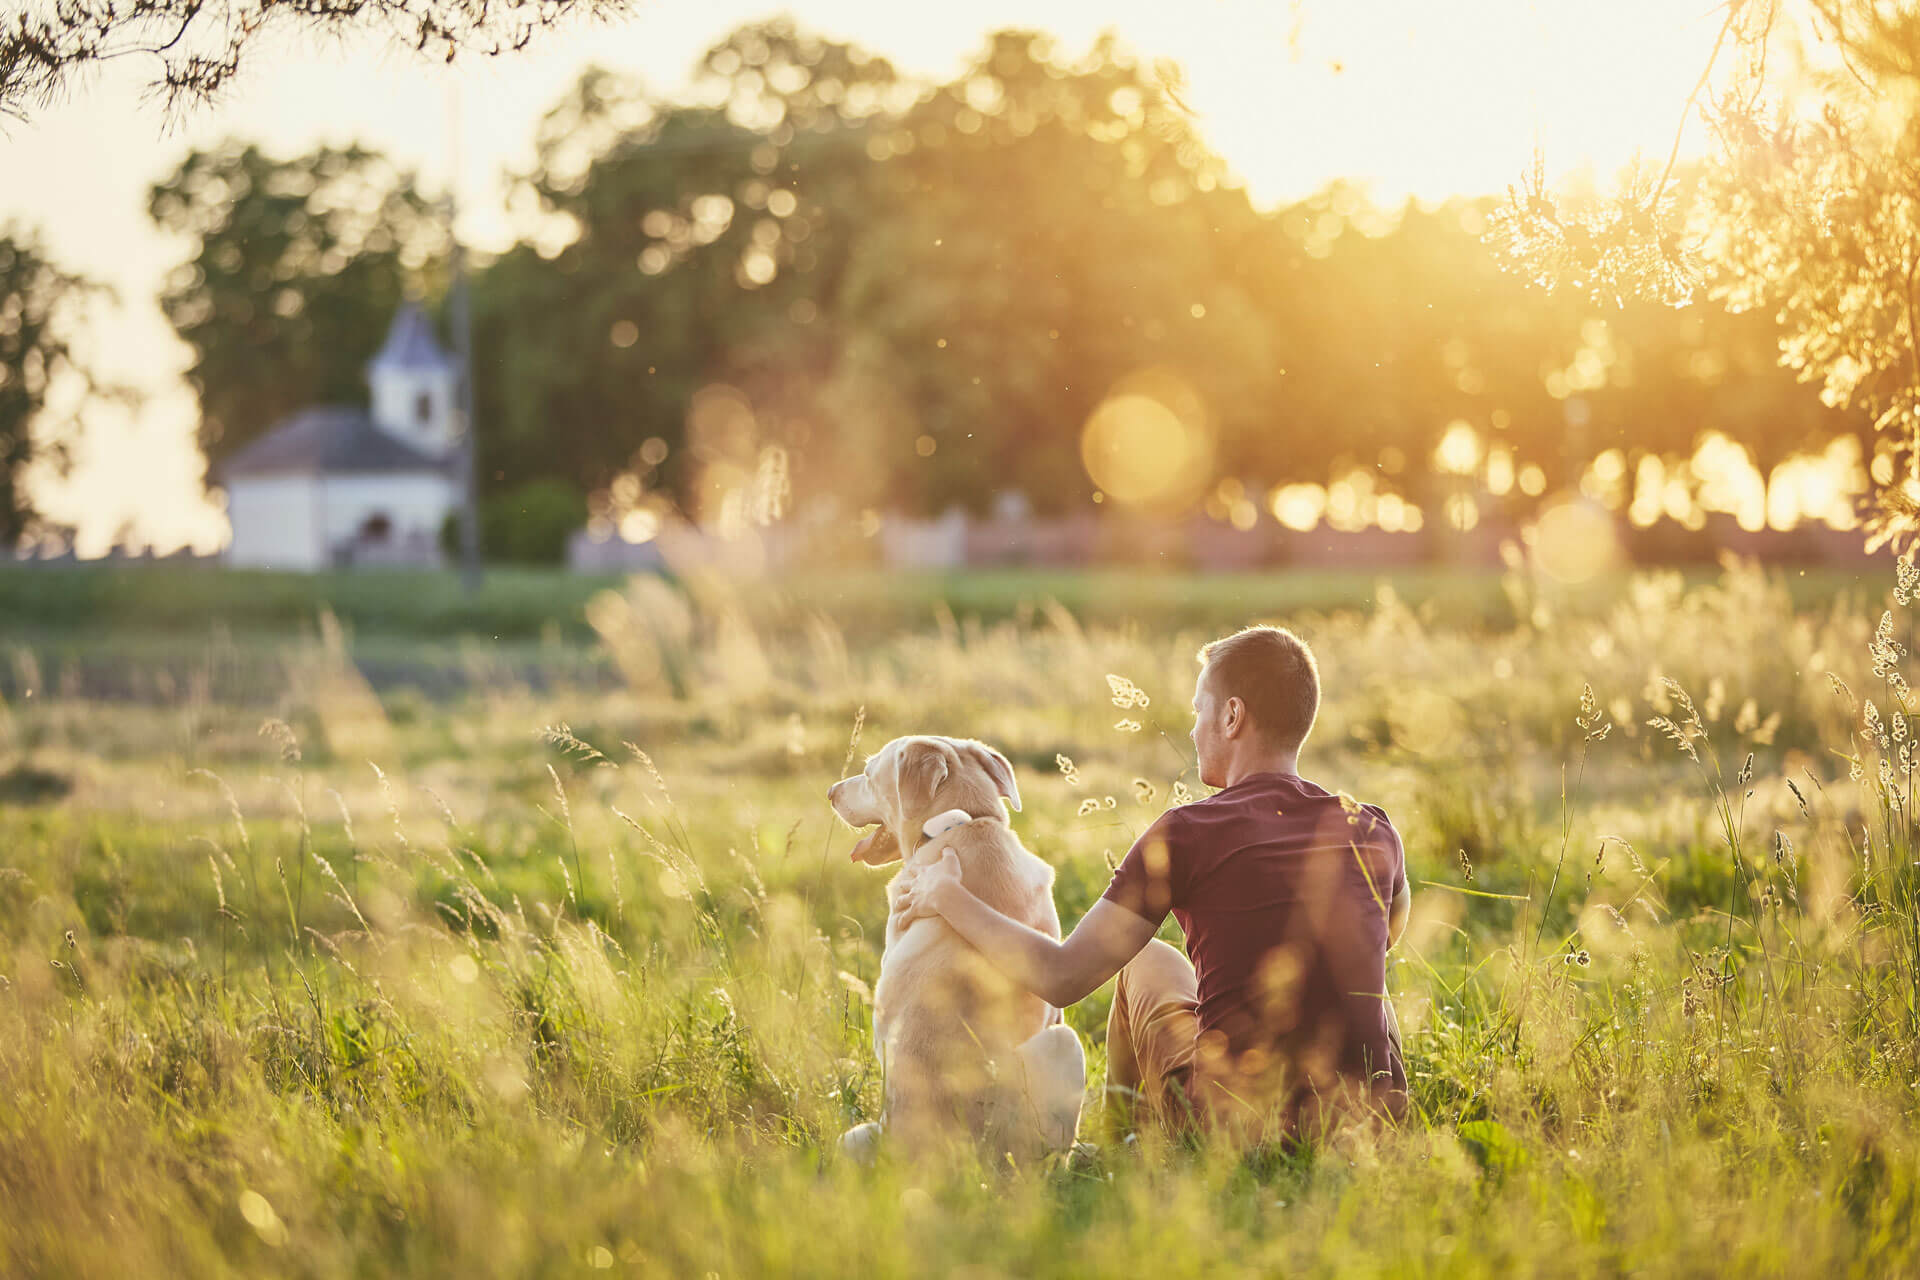 dog wearing GPS dog tracker sitting next to man outside house in field